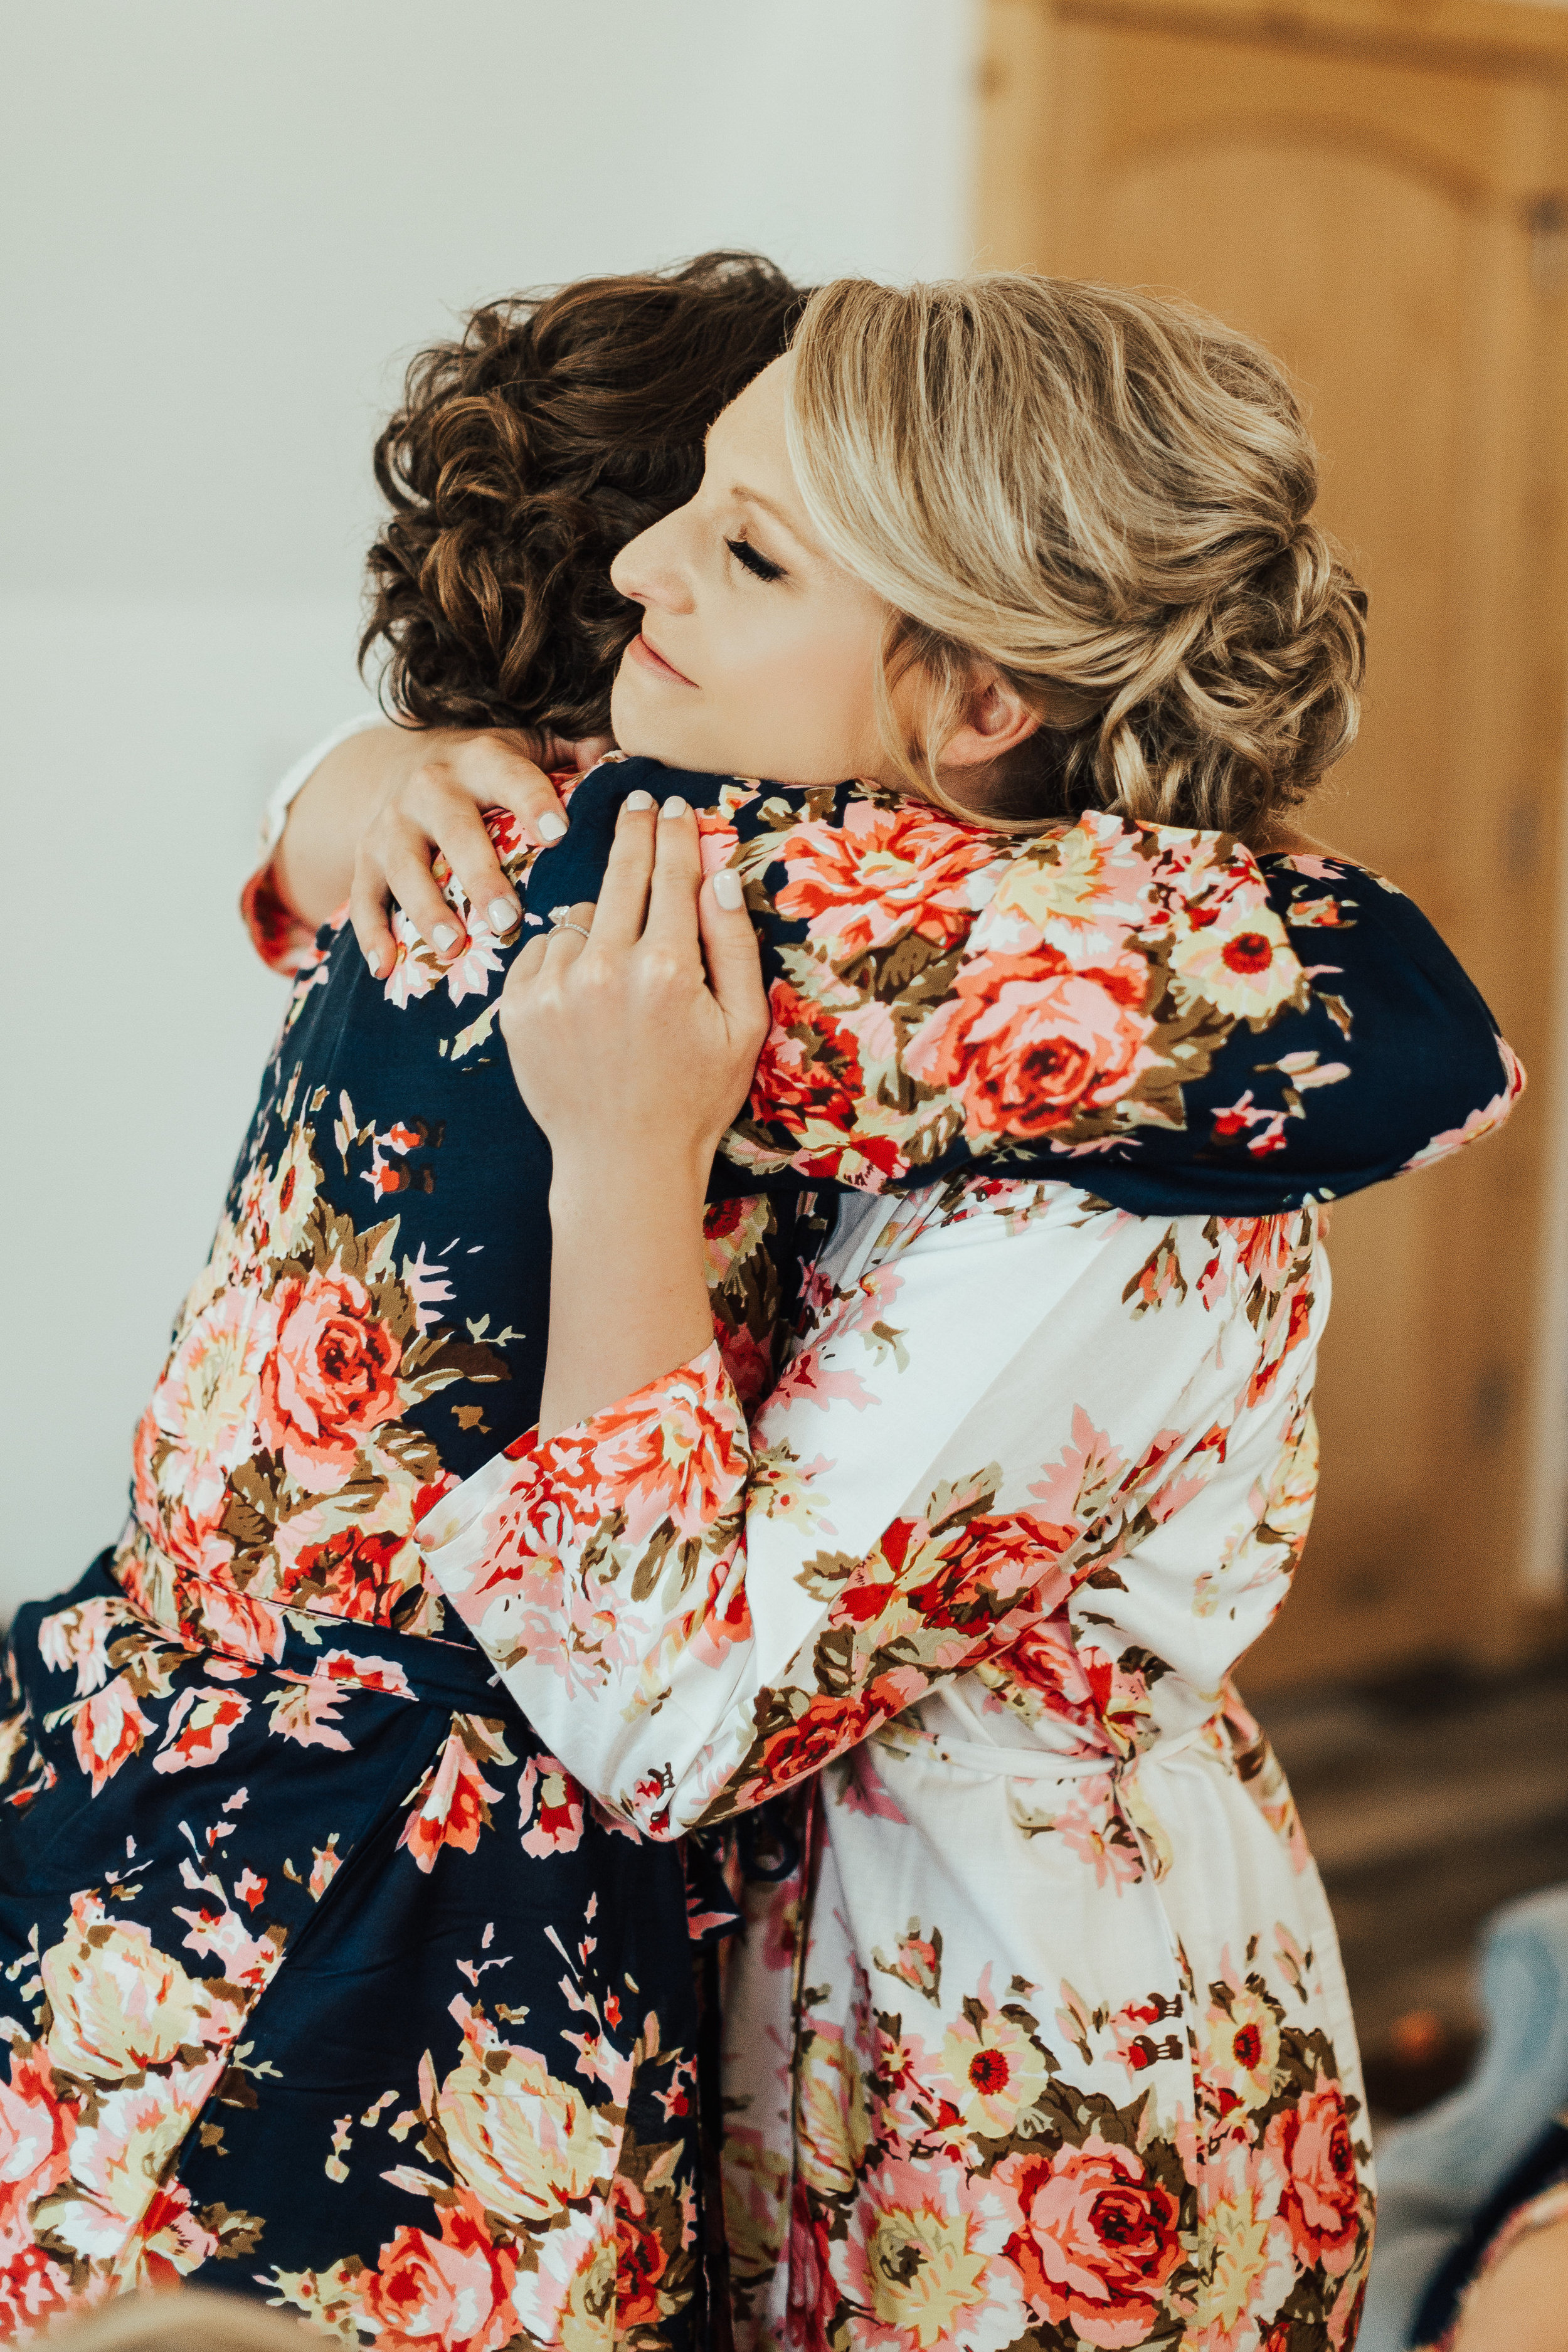 bride and bridesmaid hugs in matching robes | Janelle Elise | Megan + Corey | Furber Farm | Sixpence Events | A Vintage Touch Weddings23.jpg